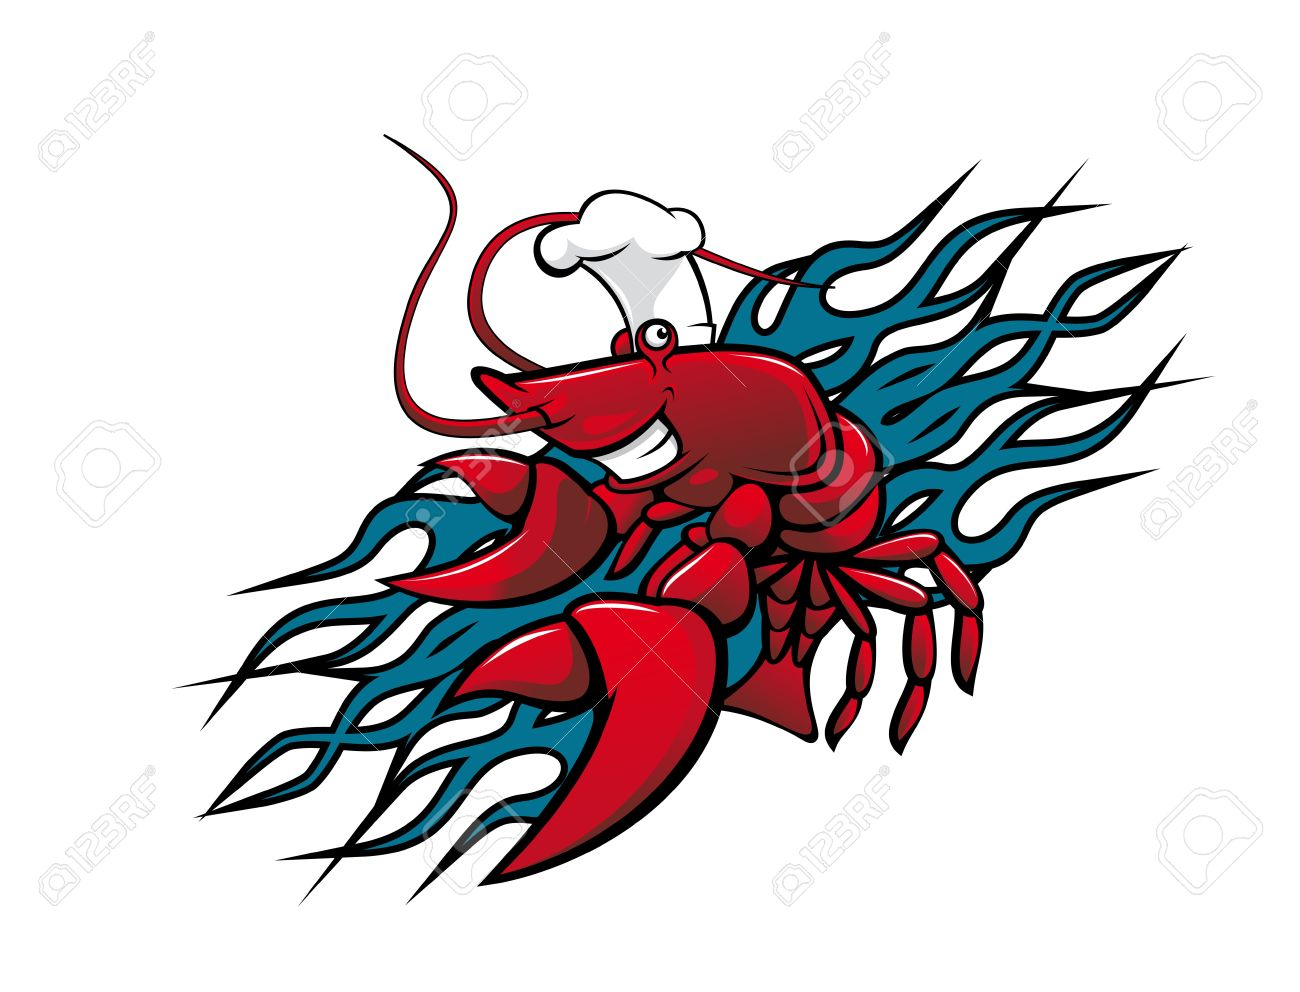 Smiling red prawn in cartoon style for tattoo design Stock Vector - 11006307